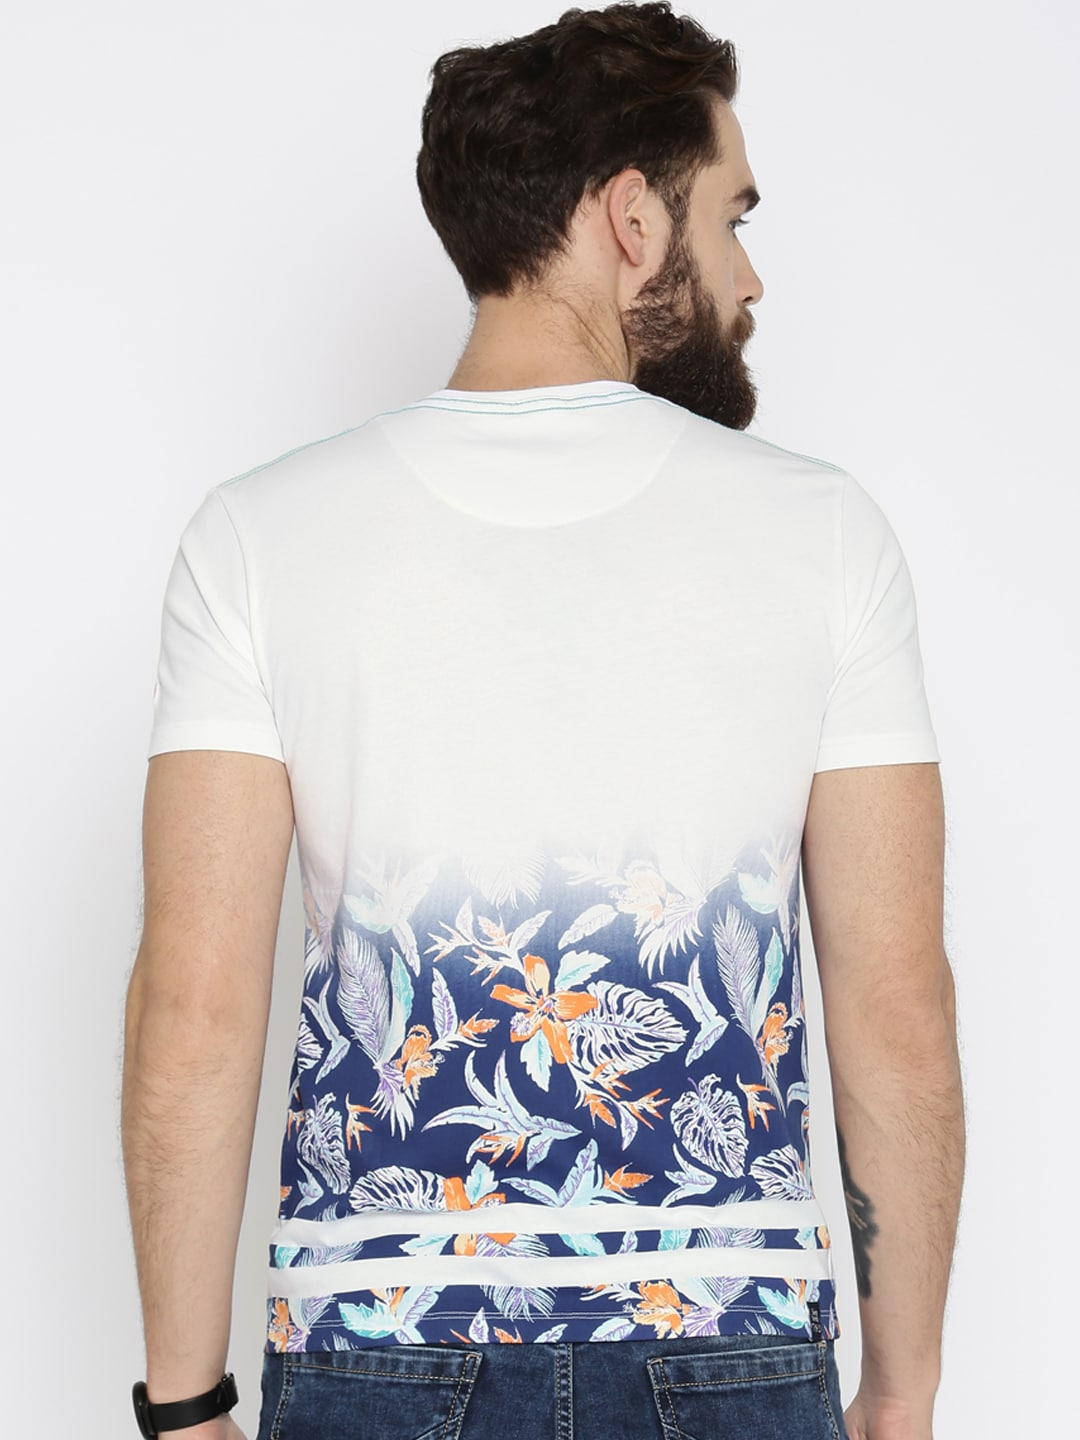 Design your own t shirt india cash on delivery - Design Your Own T Shirt India Cash On Delivery 24